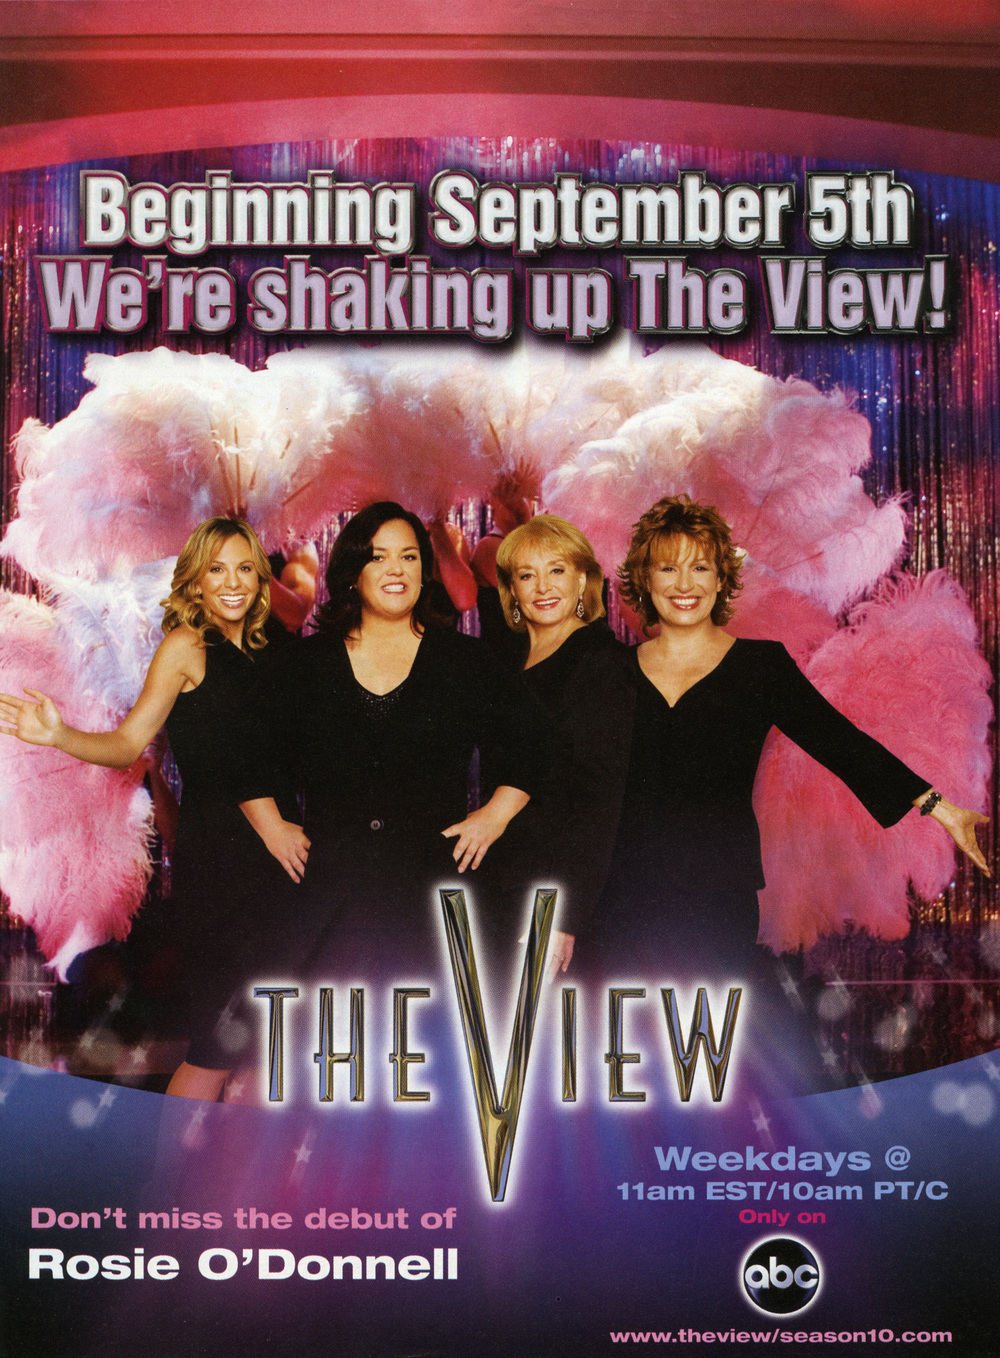 theview06.jpg